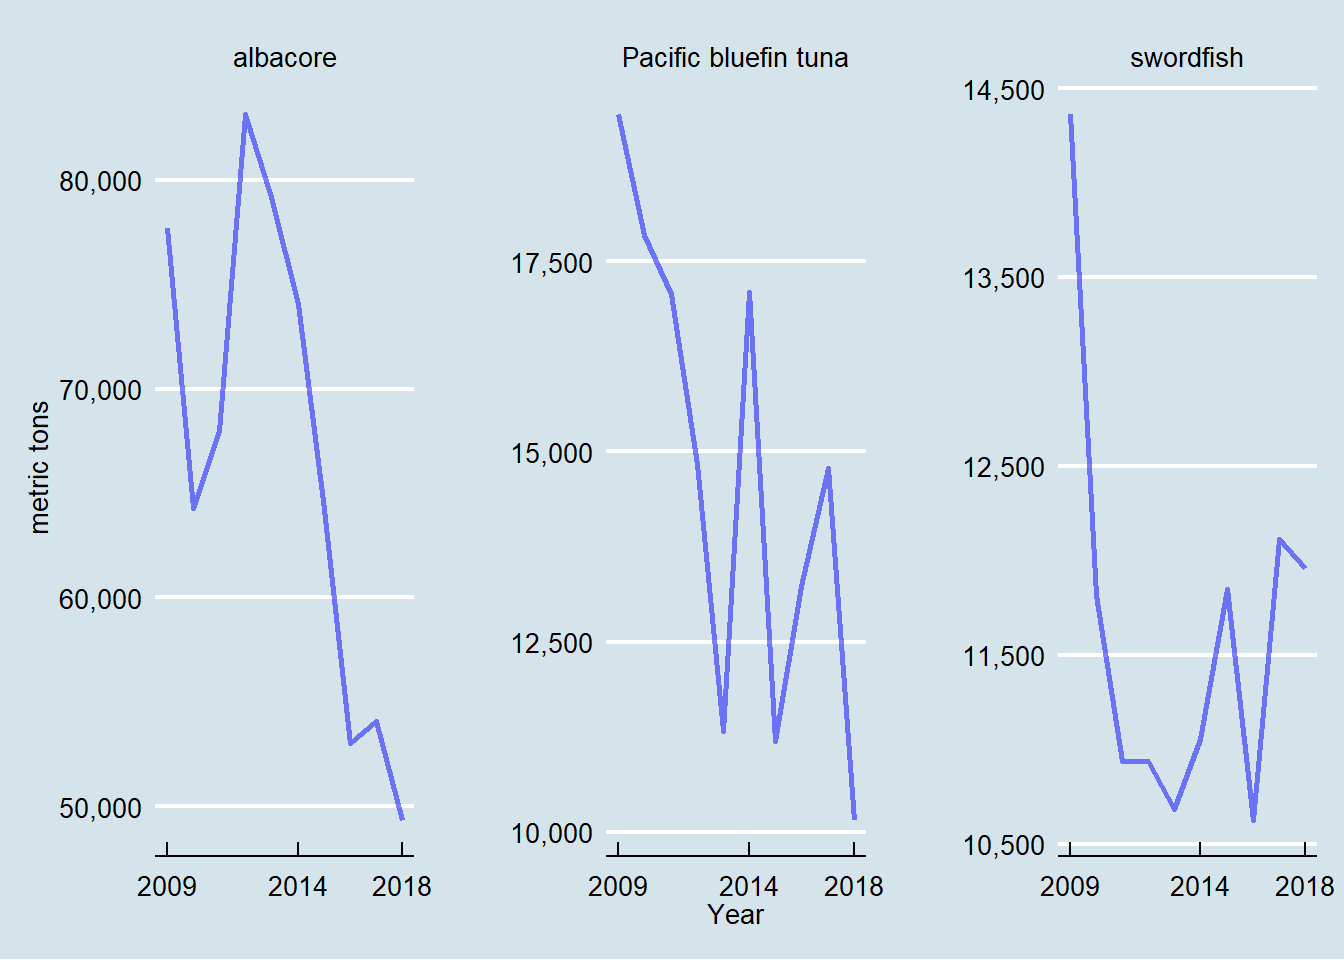 Landings of albacore, Pacific bluefin, and swordfish, metric tons 2009-2018 in the North Pacific Ocean.